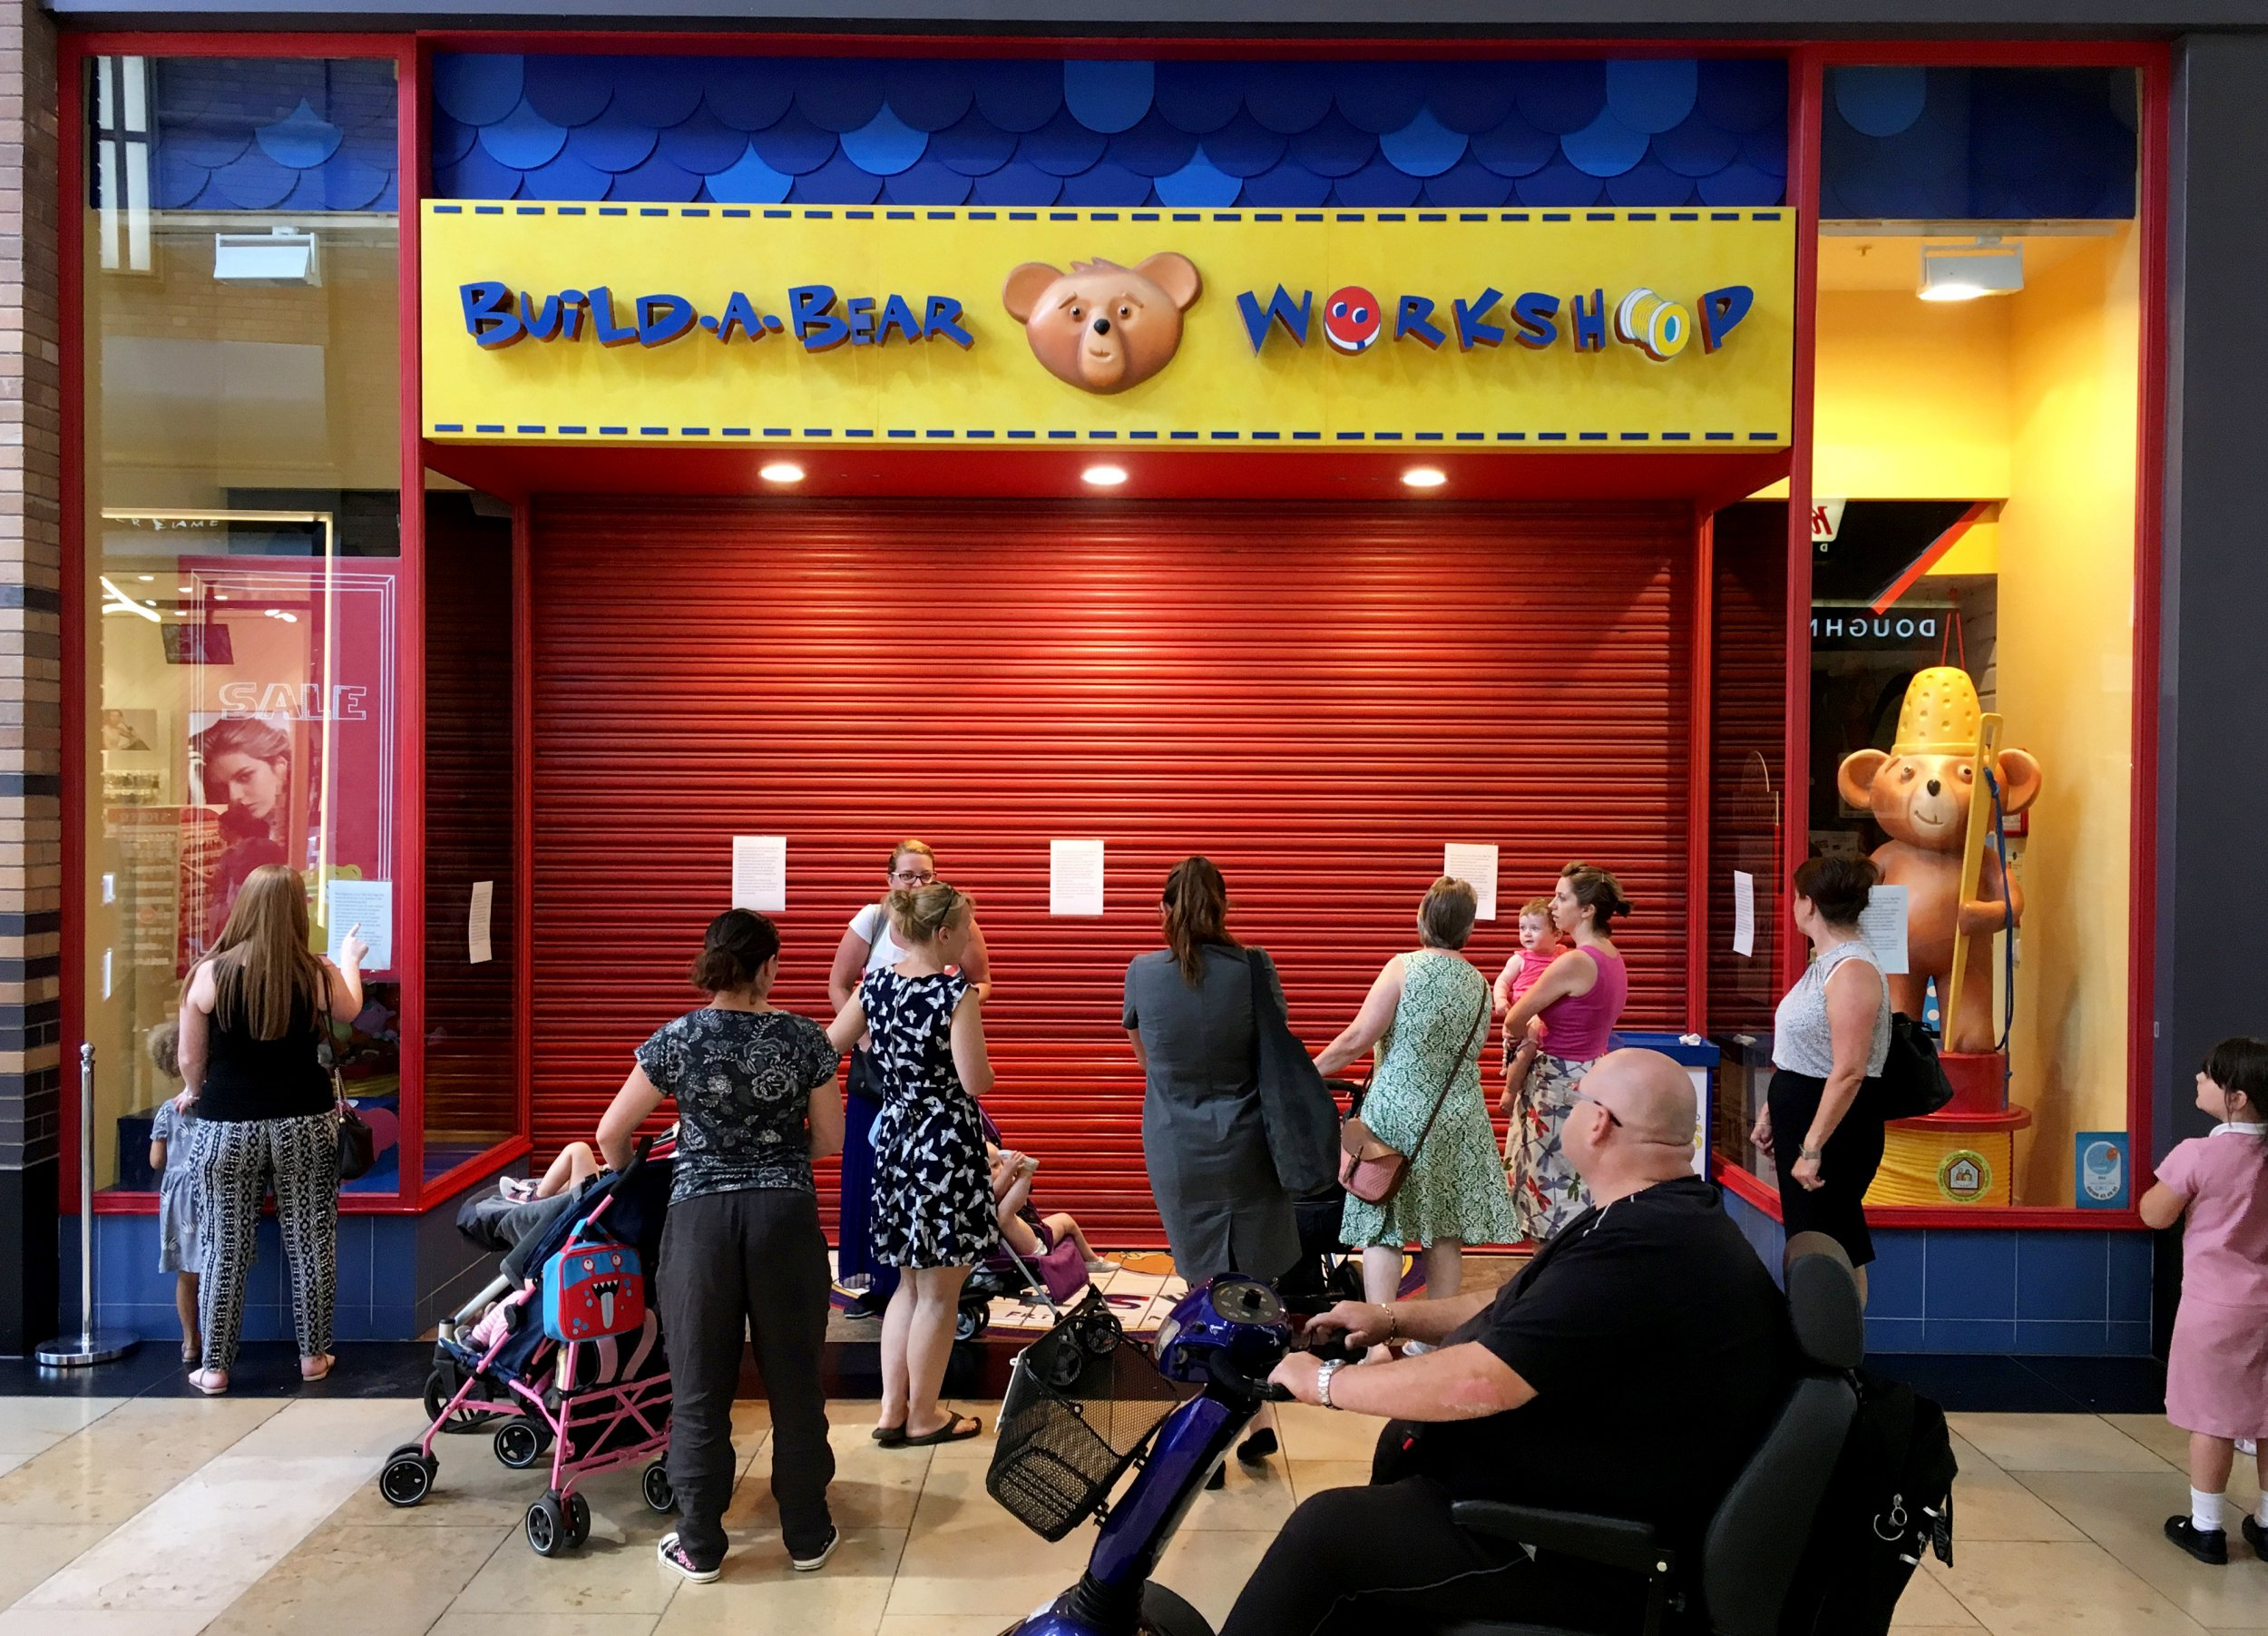 The Build-A-Bear Workshop in the Touchwood Shopping Centre, Solihull, West Midlands has had to close due to the unprecidented demand during their 'pay your age' sale where ?50 teddies were being sold for just a few pounds. See ROSS PARRY story RPYBEARS. July 12, 2018.